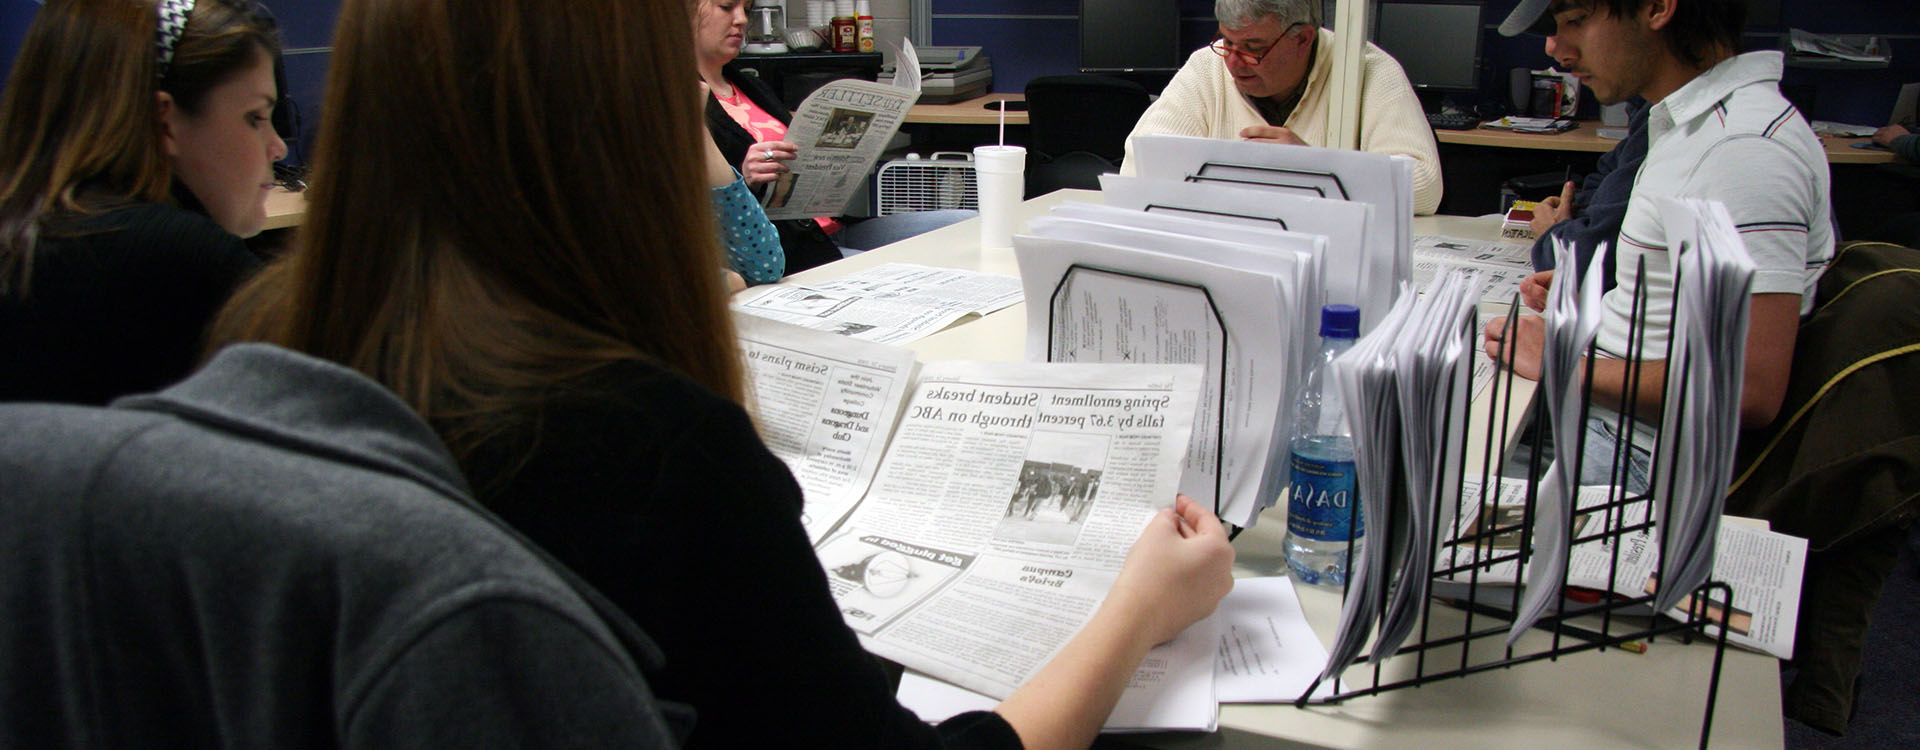 students working in the Settler newspaper office